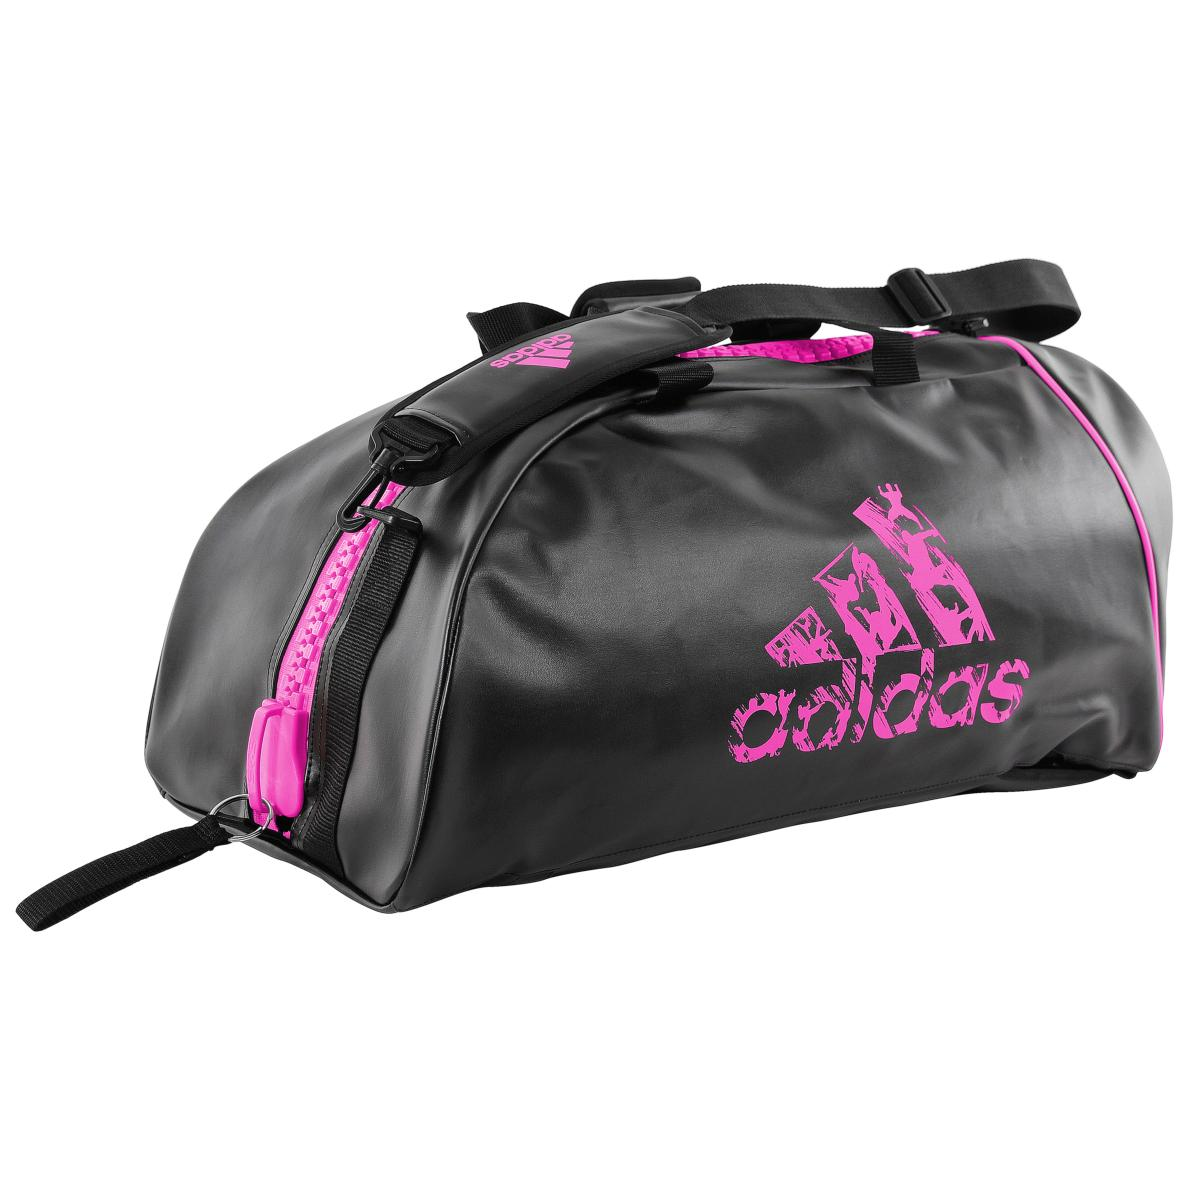 sac de sport adidas convertible sac de sport lecoinduring. Black Bedroom Furniture Sets. Home Design Ideas